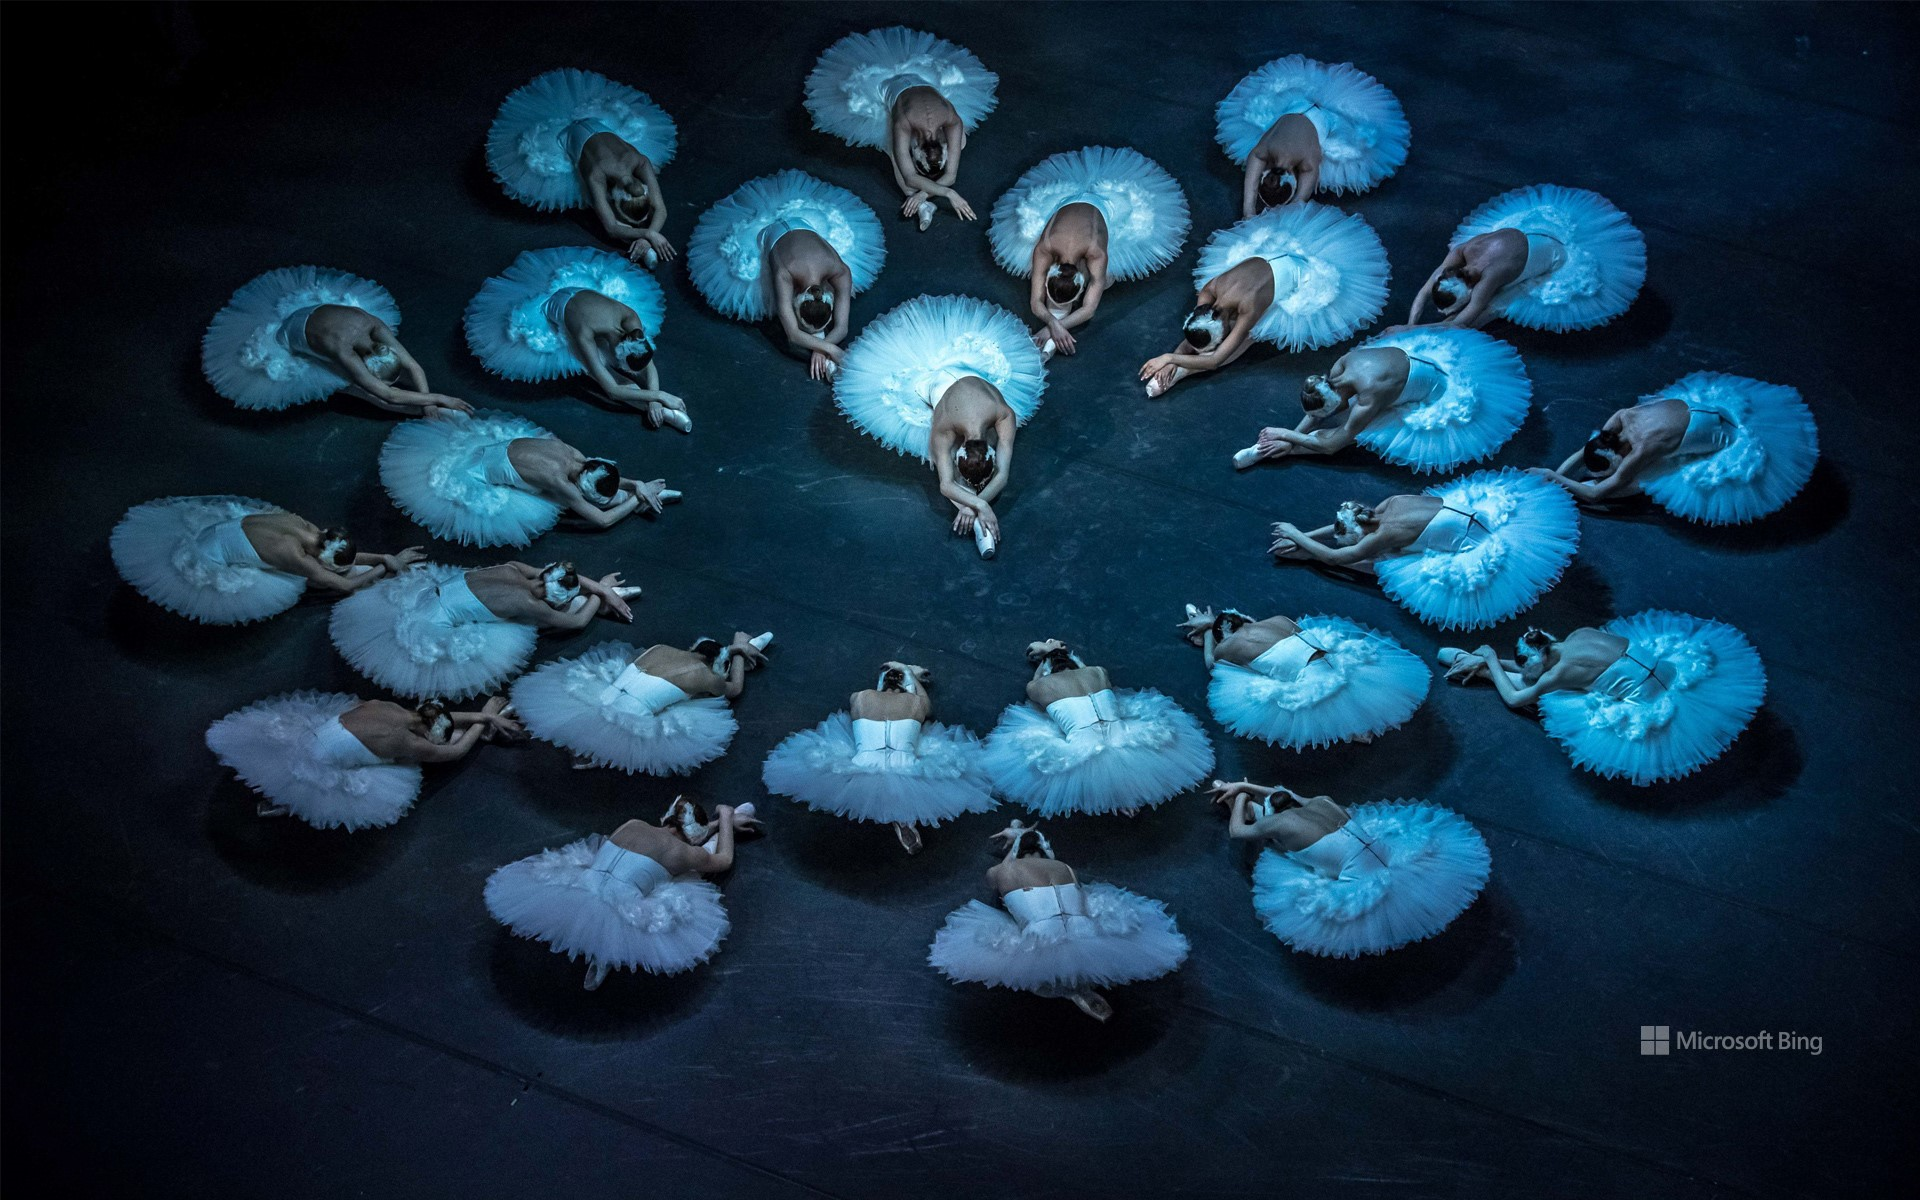 Rehearsal of Swan Lake by the Czech National Ballet in Prague, Czech Republic, March 25, 2019